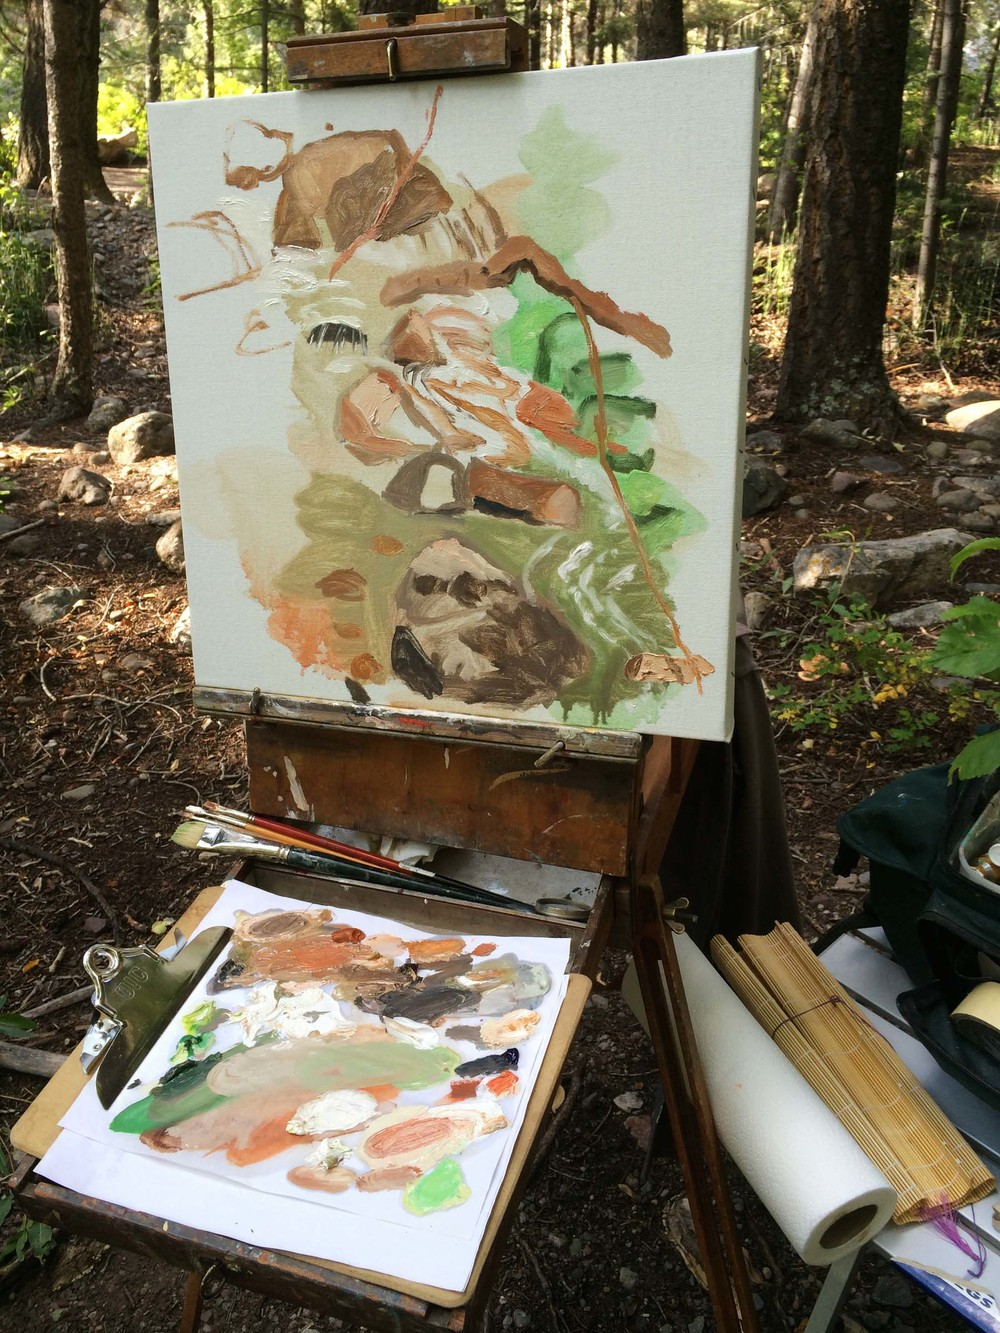 site-8-20-14 plein air easel.jpg